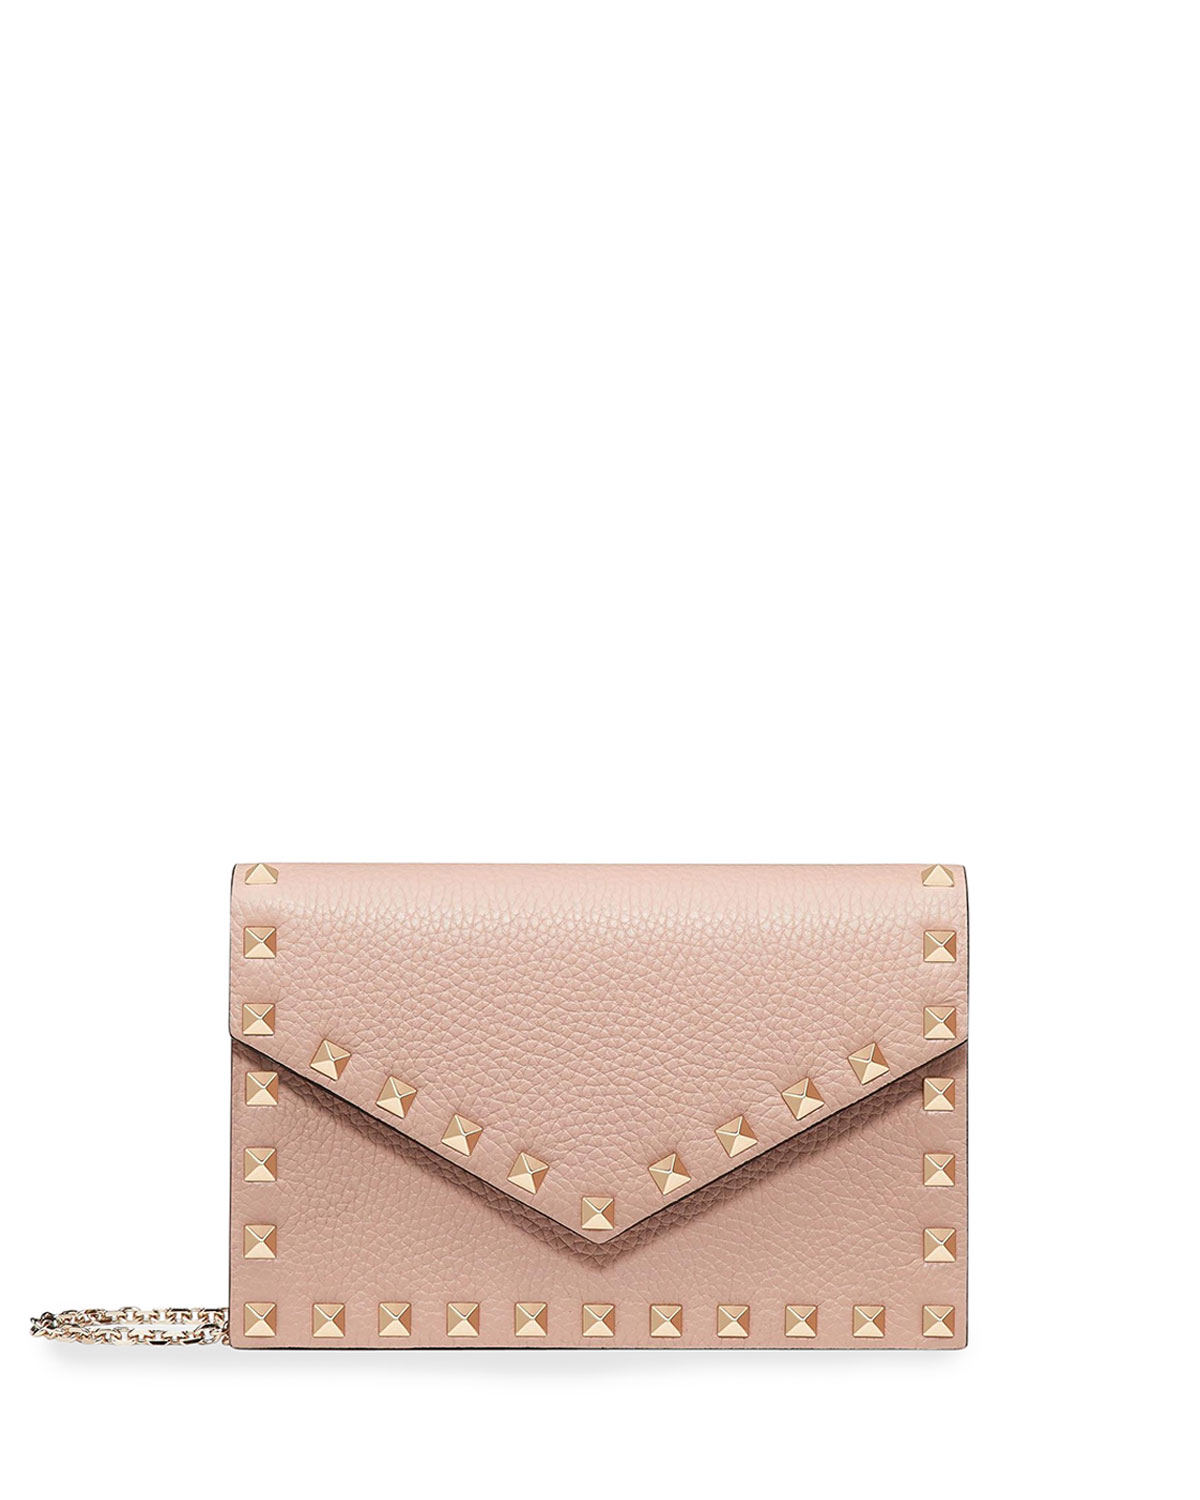 76008db1dd3 Rockstud Small Leather Flap Wallet on a Chain